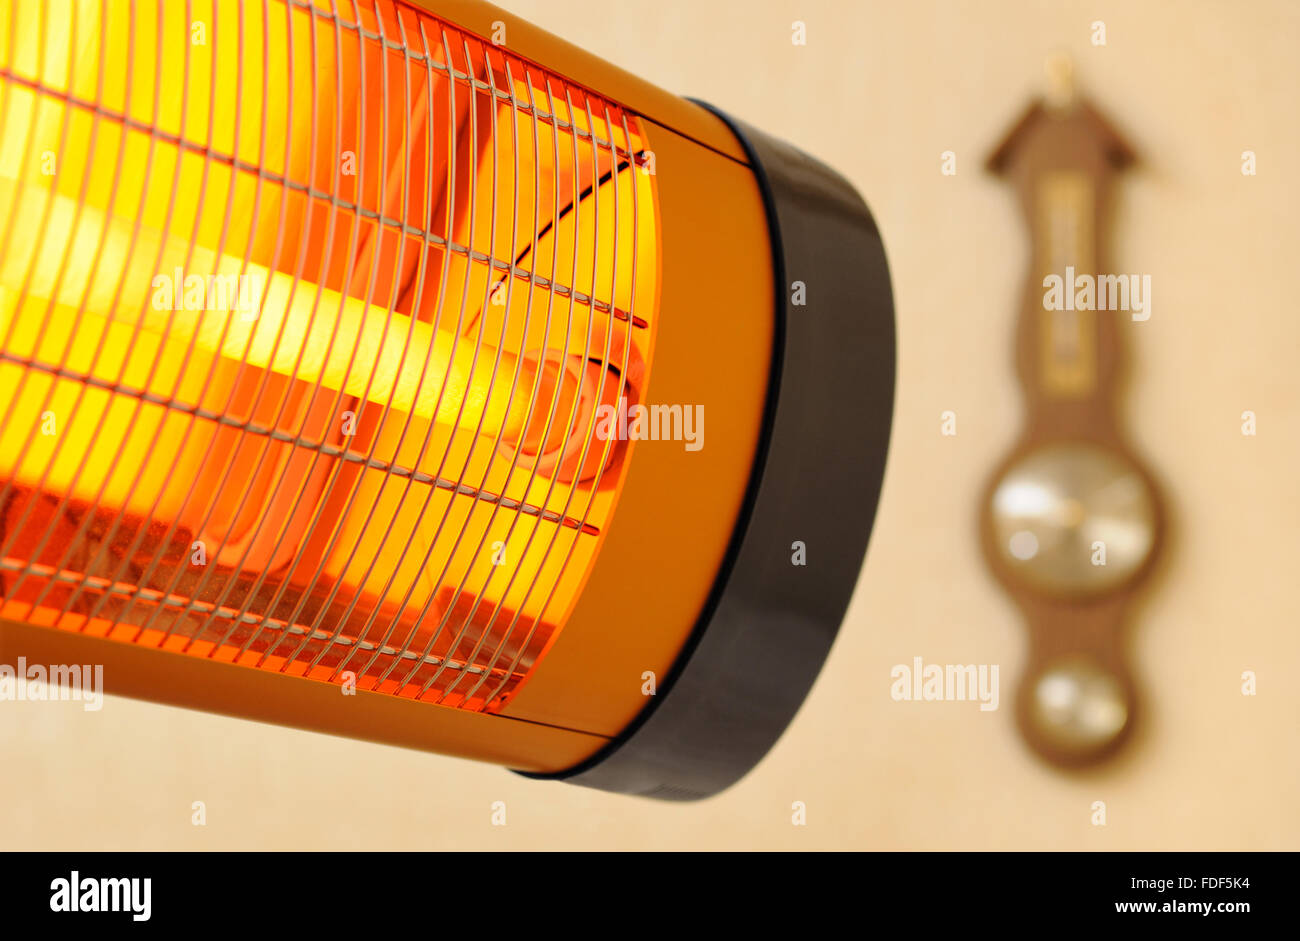 House Infra-red heater and barometer - Stock Image